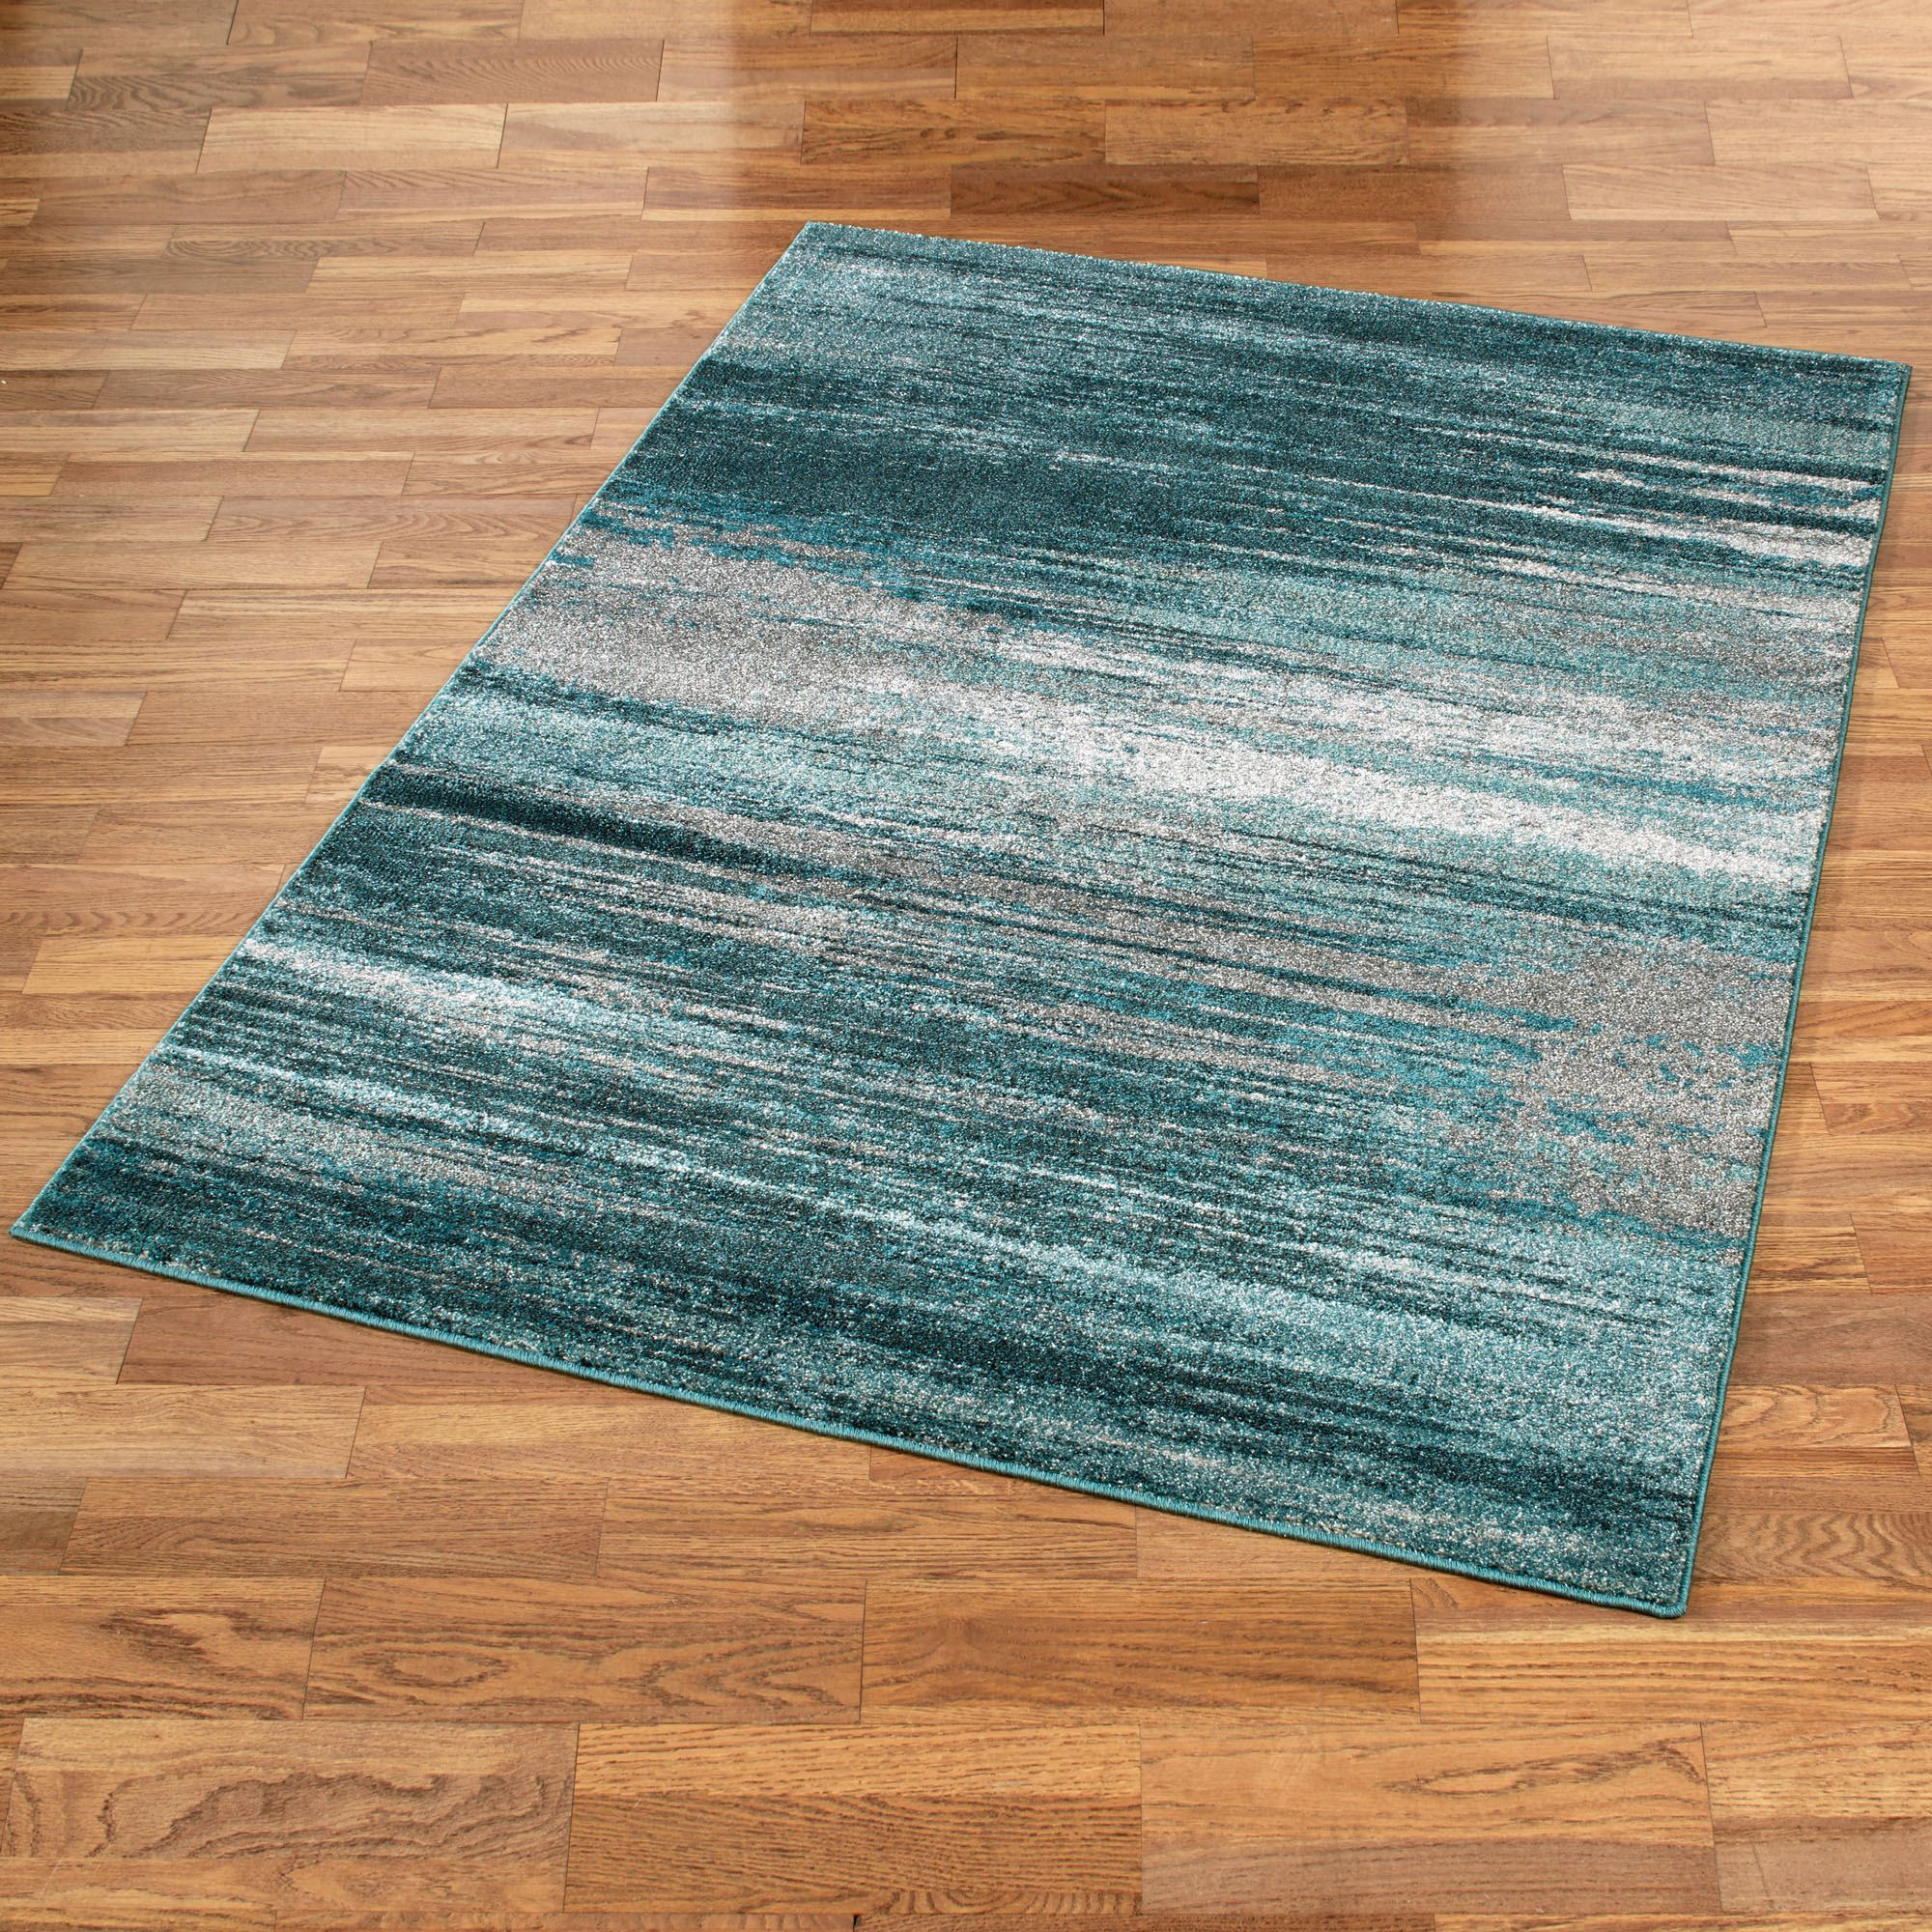 Teal Rugs Matching Color Ideas Darbylanefurniture